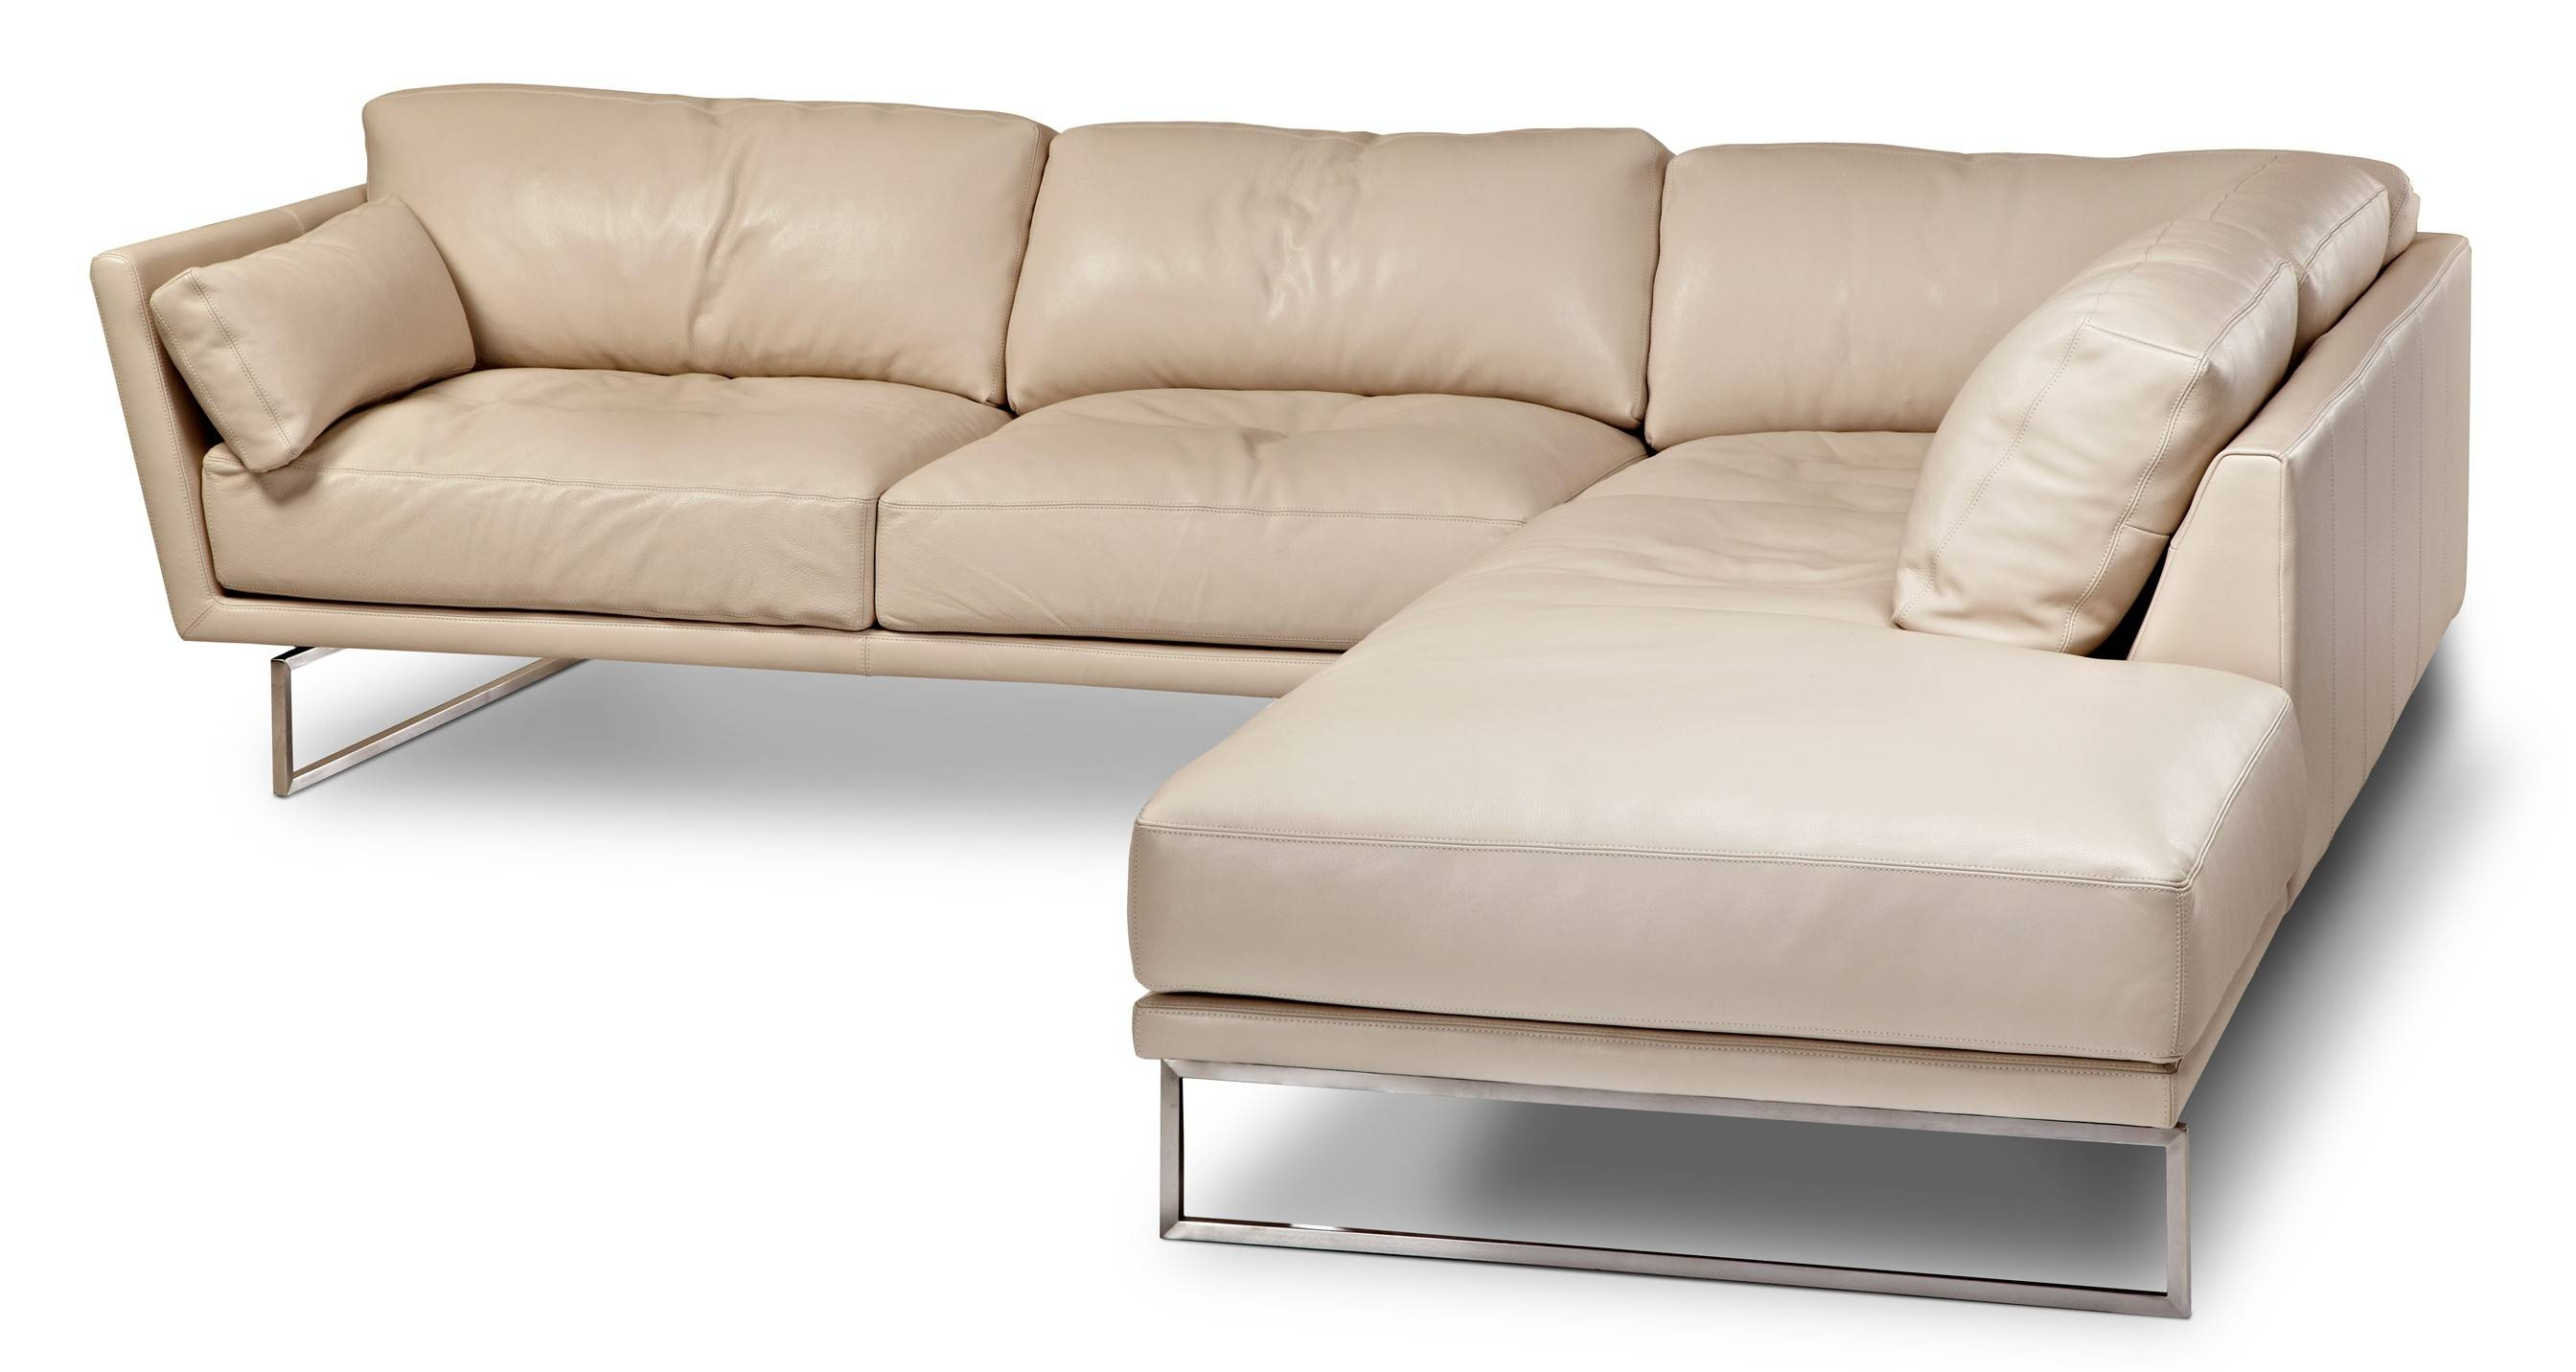 American Leather Sofa Bed Sectional | Tehranmix Decoration for Sleek Sectional Sofa (Image 1 of 25)